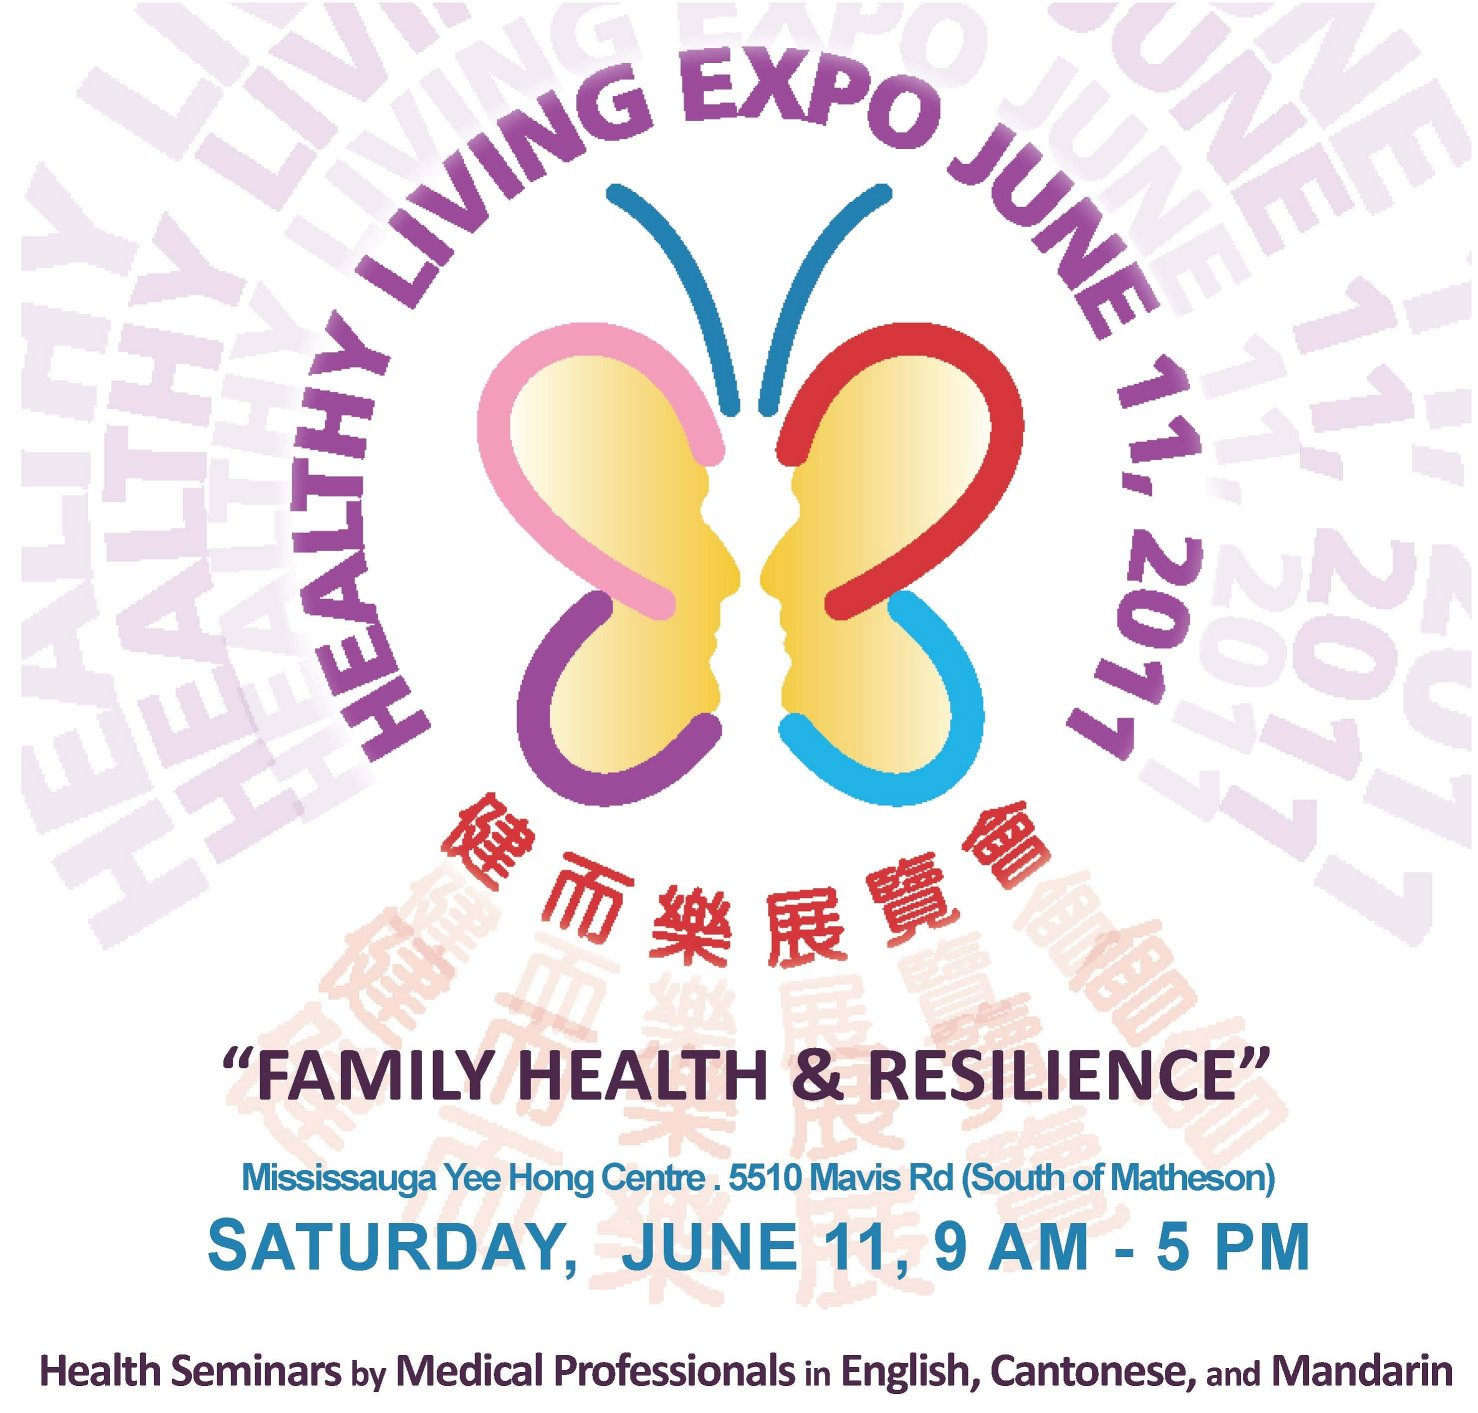 Healthy Living Expo 2011 Logo image from http://www.cpbexpo.com/